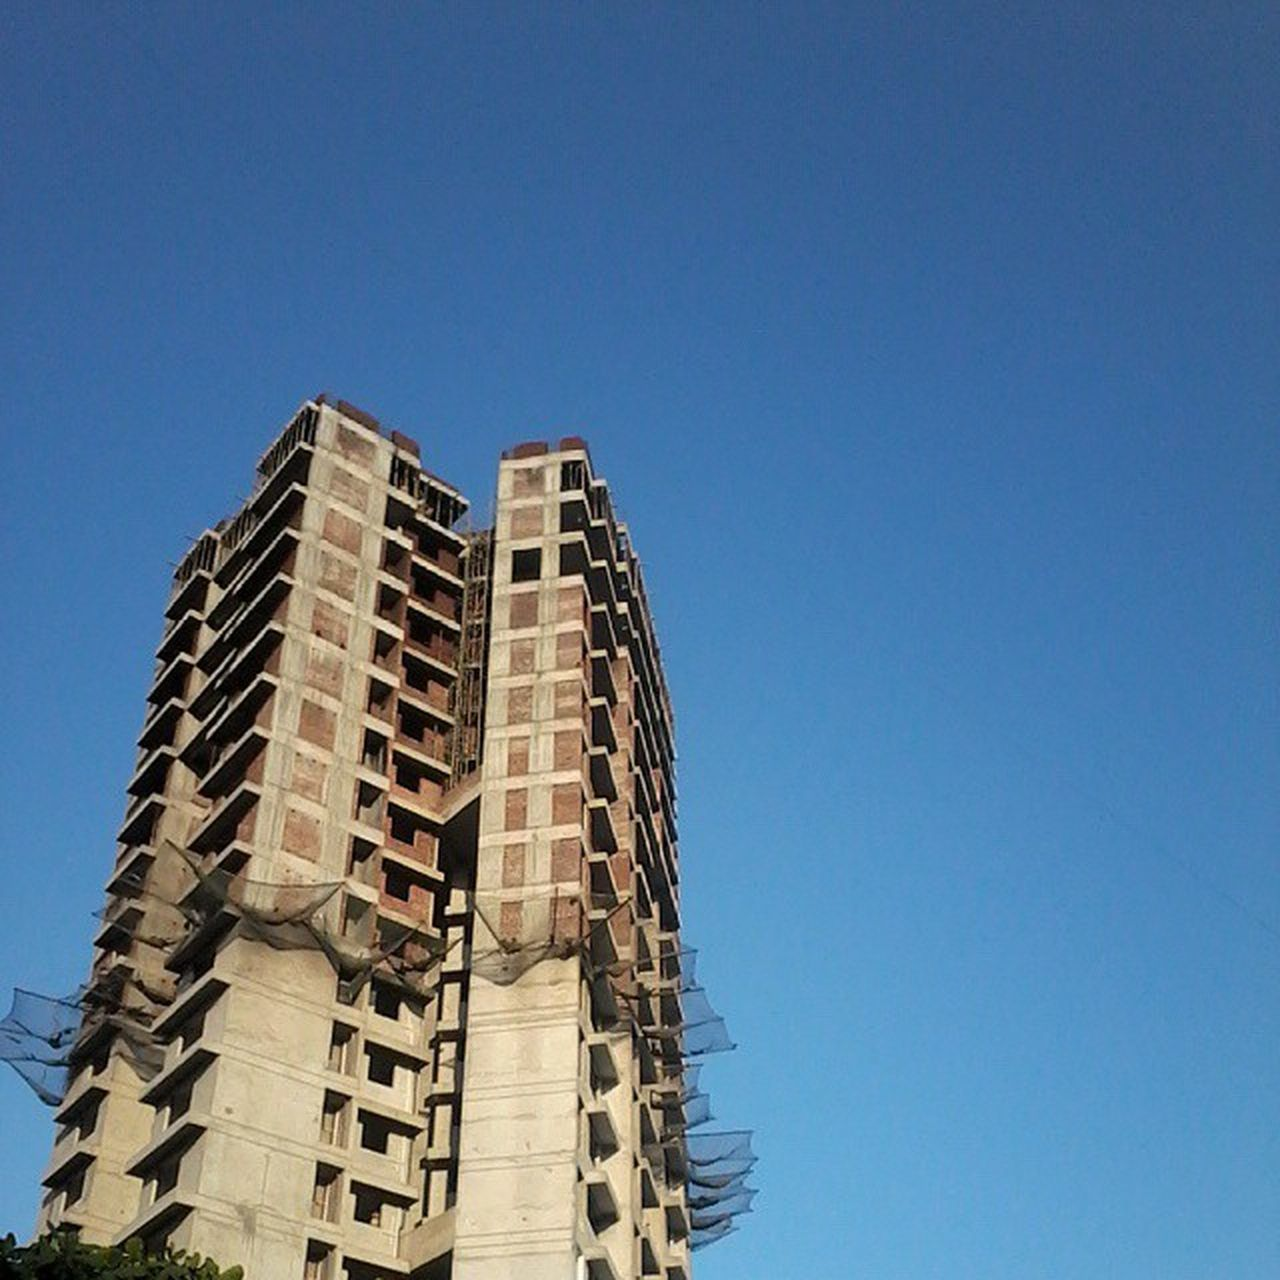 Low angle view of under construction building against clear blue sky Construction Construction Site Copy_Space Development Incomplete